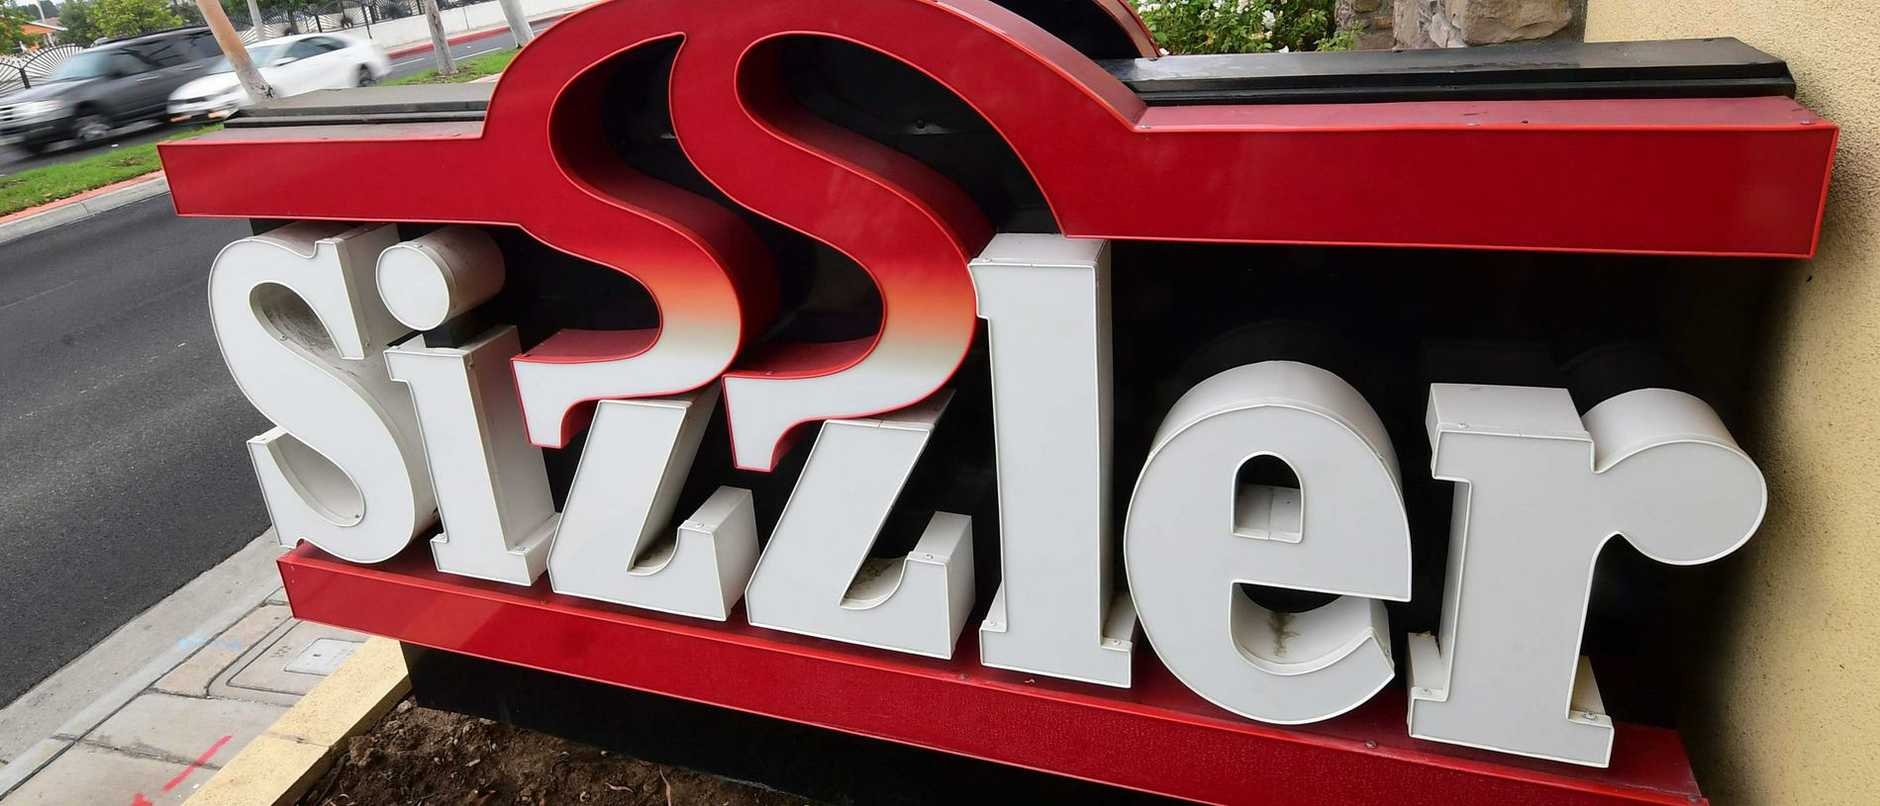 All Australian Sizzler stores are closing.